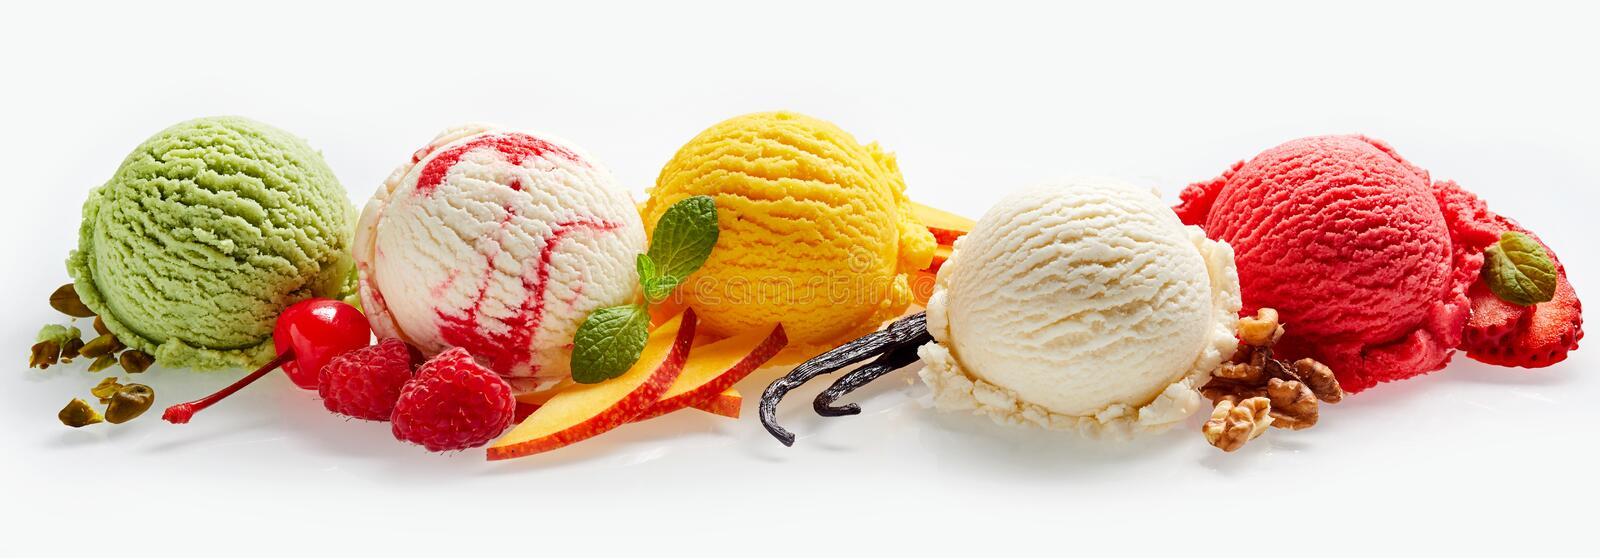 Set of ice cream scoops. Of different colors and flavours with berries, nuts and fruits decoration on white background stock photography